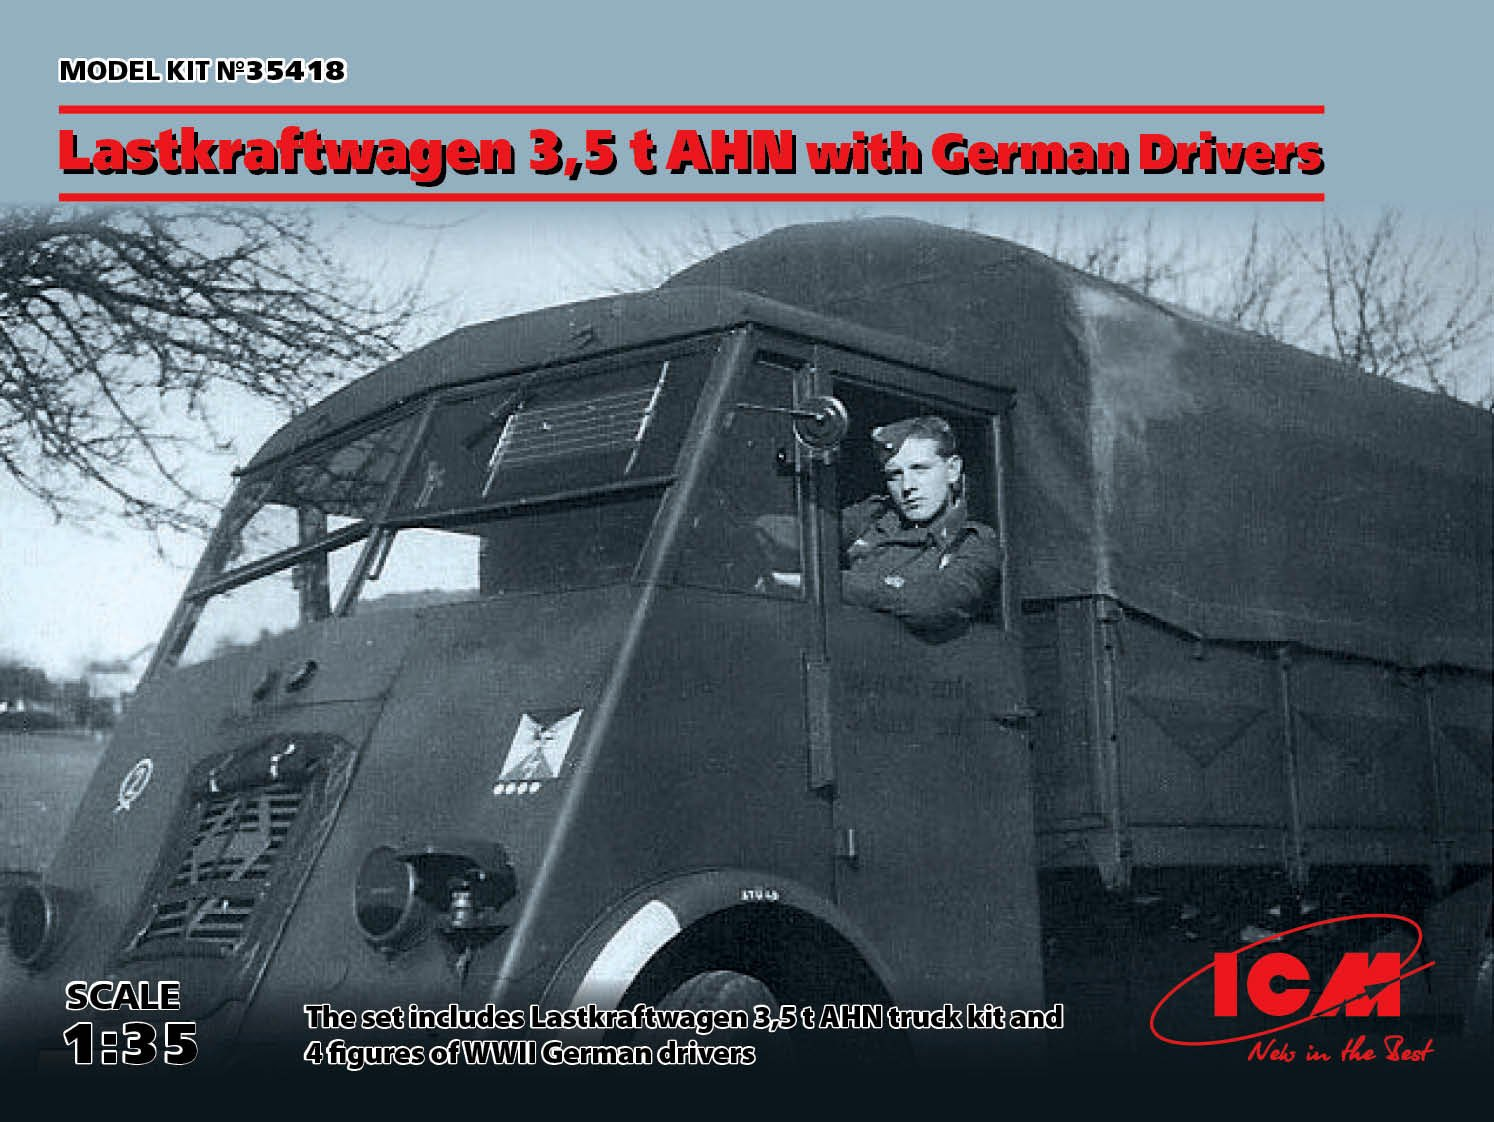 1/35 Lastkraftwagen 3,5 t AHN with German Drivers 35418